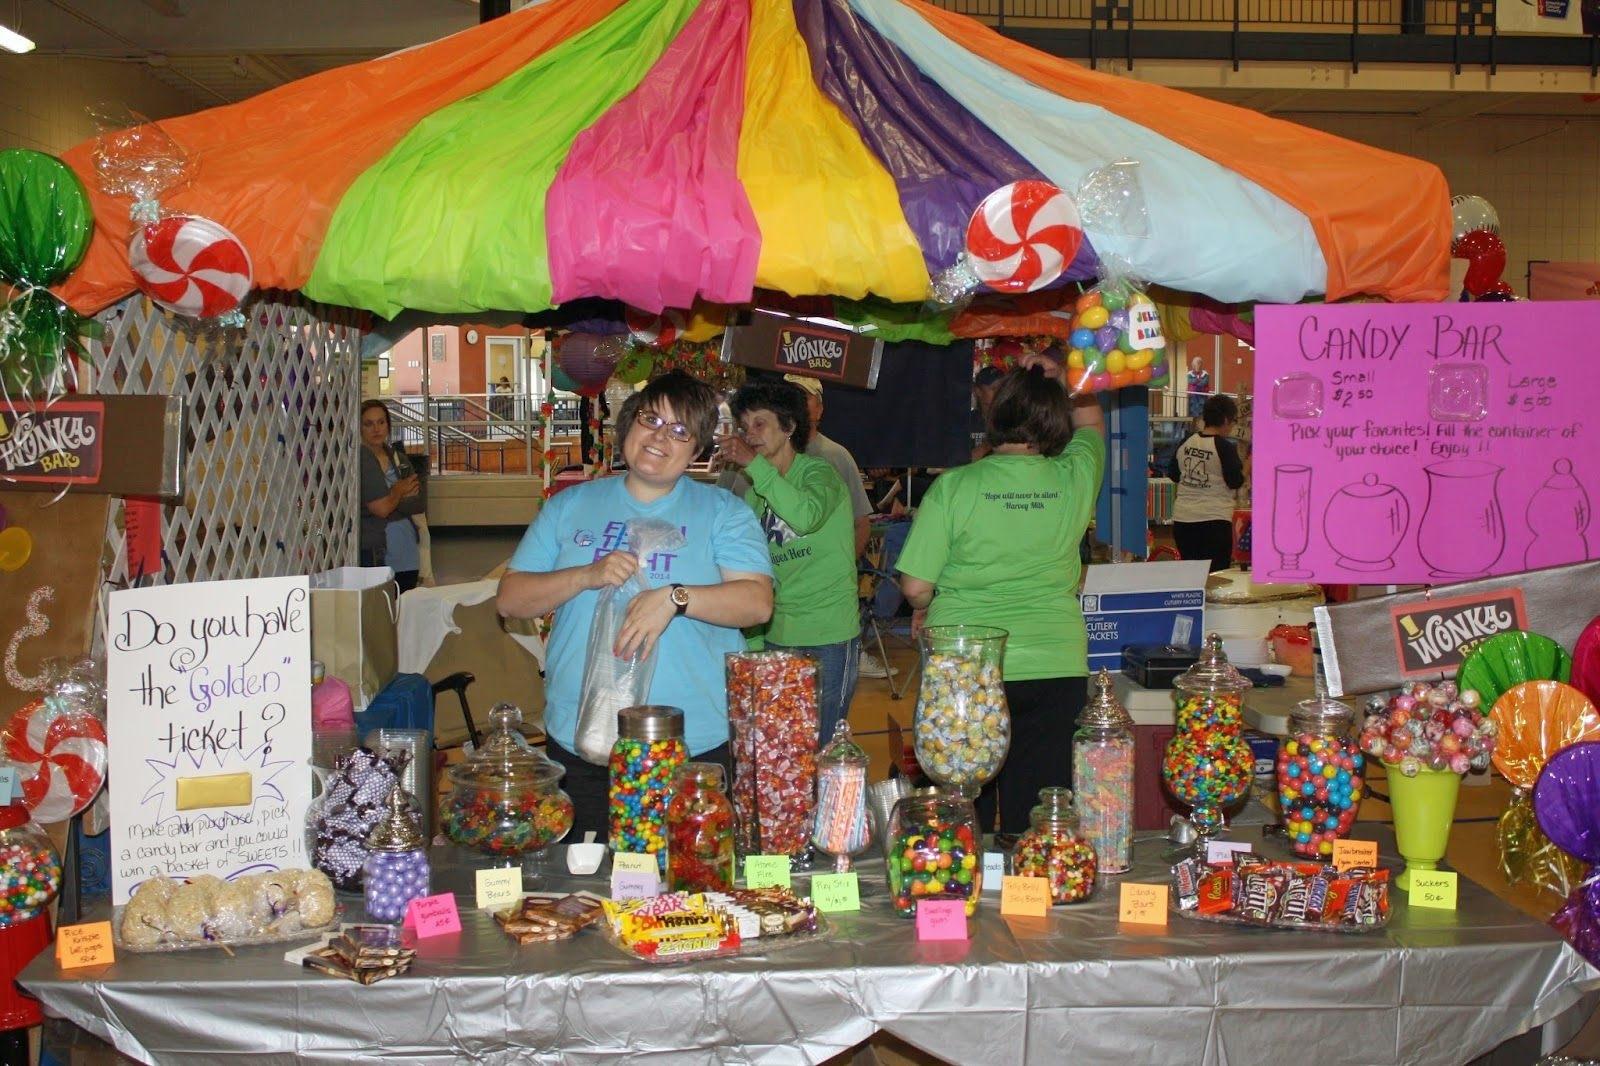 Relay for Life Themes | Relay For Life Campsite Decorating and On Site Fundraiser Ideas